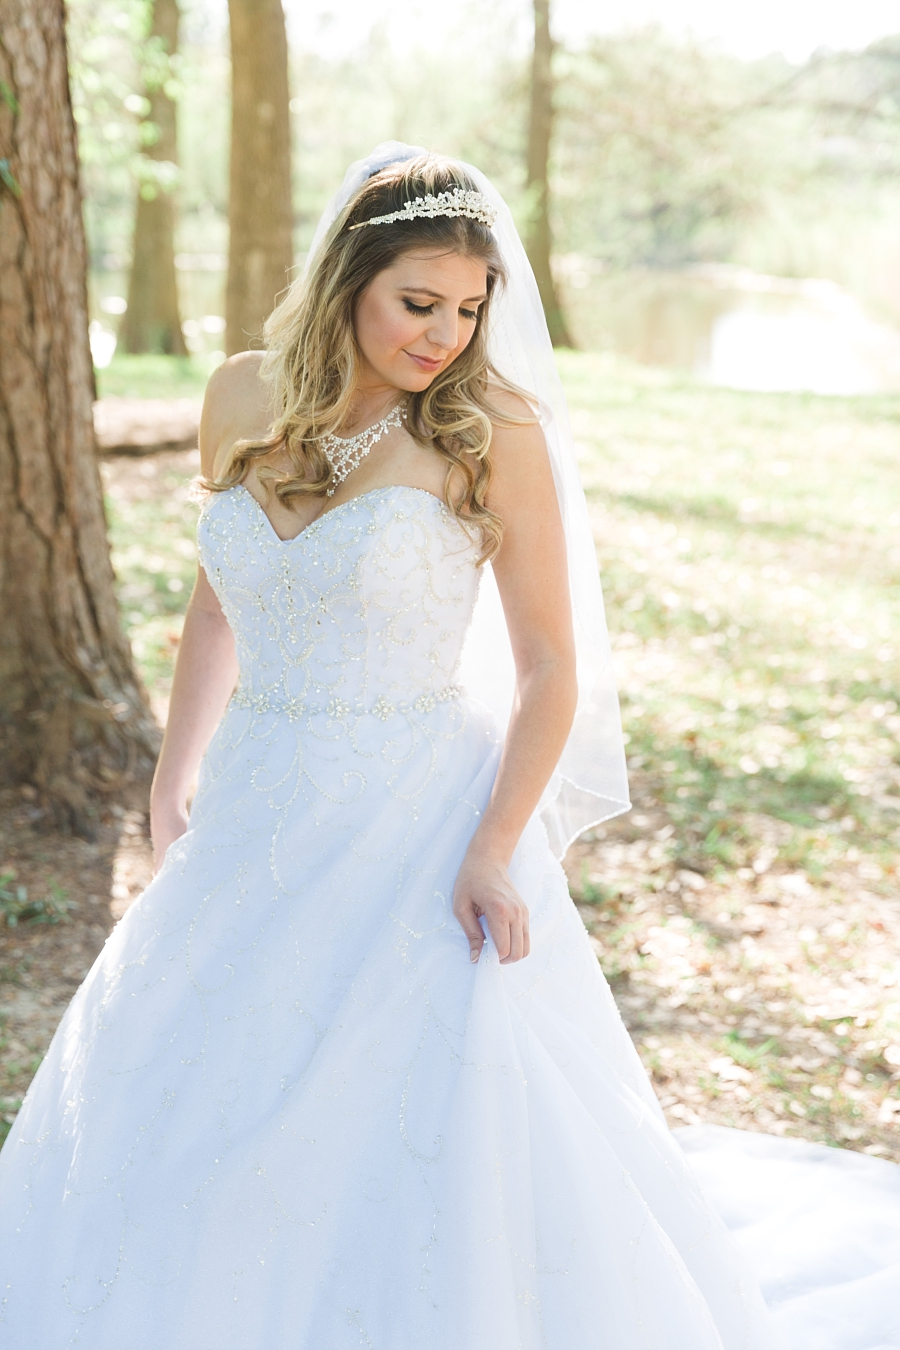 Stacy-Anderson-Photography-Shirley-Acres-Wedding-Photographer_0016.jpg